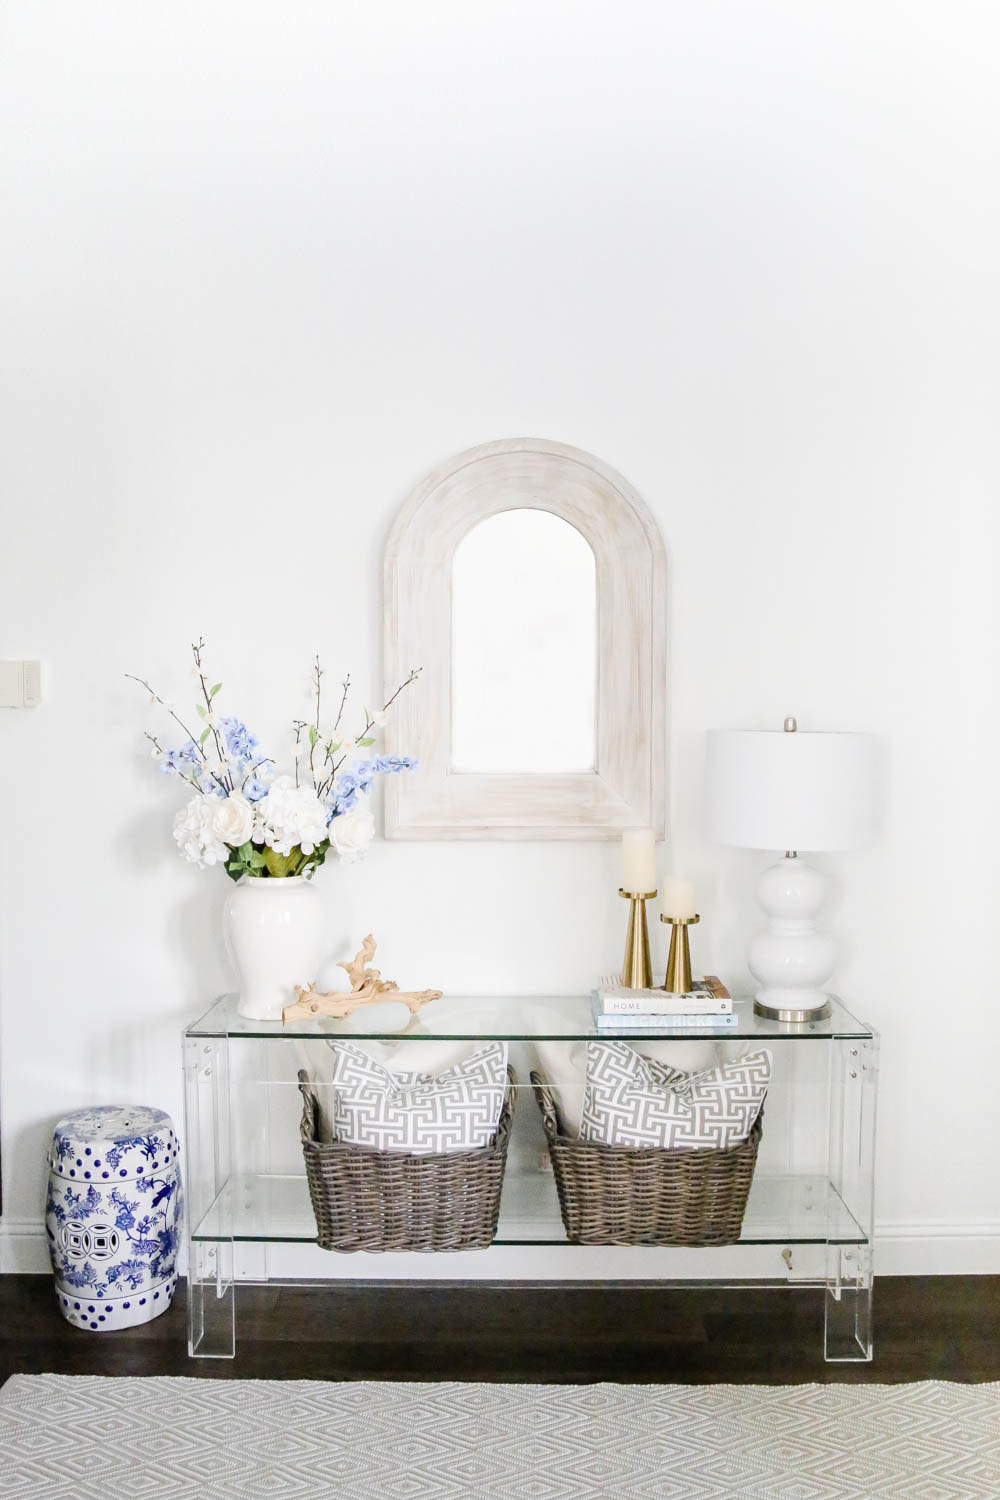 Entryway spring decor, lucite table, styling tips for spring. #ABlissfulNest #springdecor #springdecoratingideas